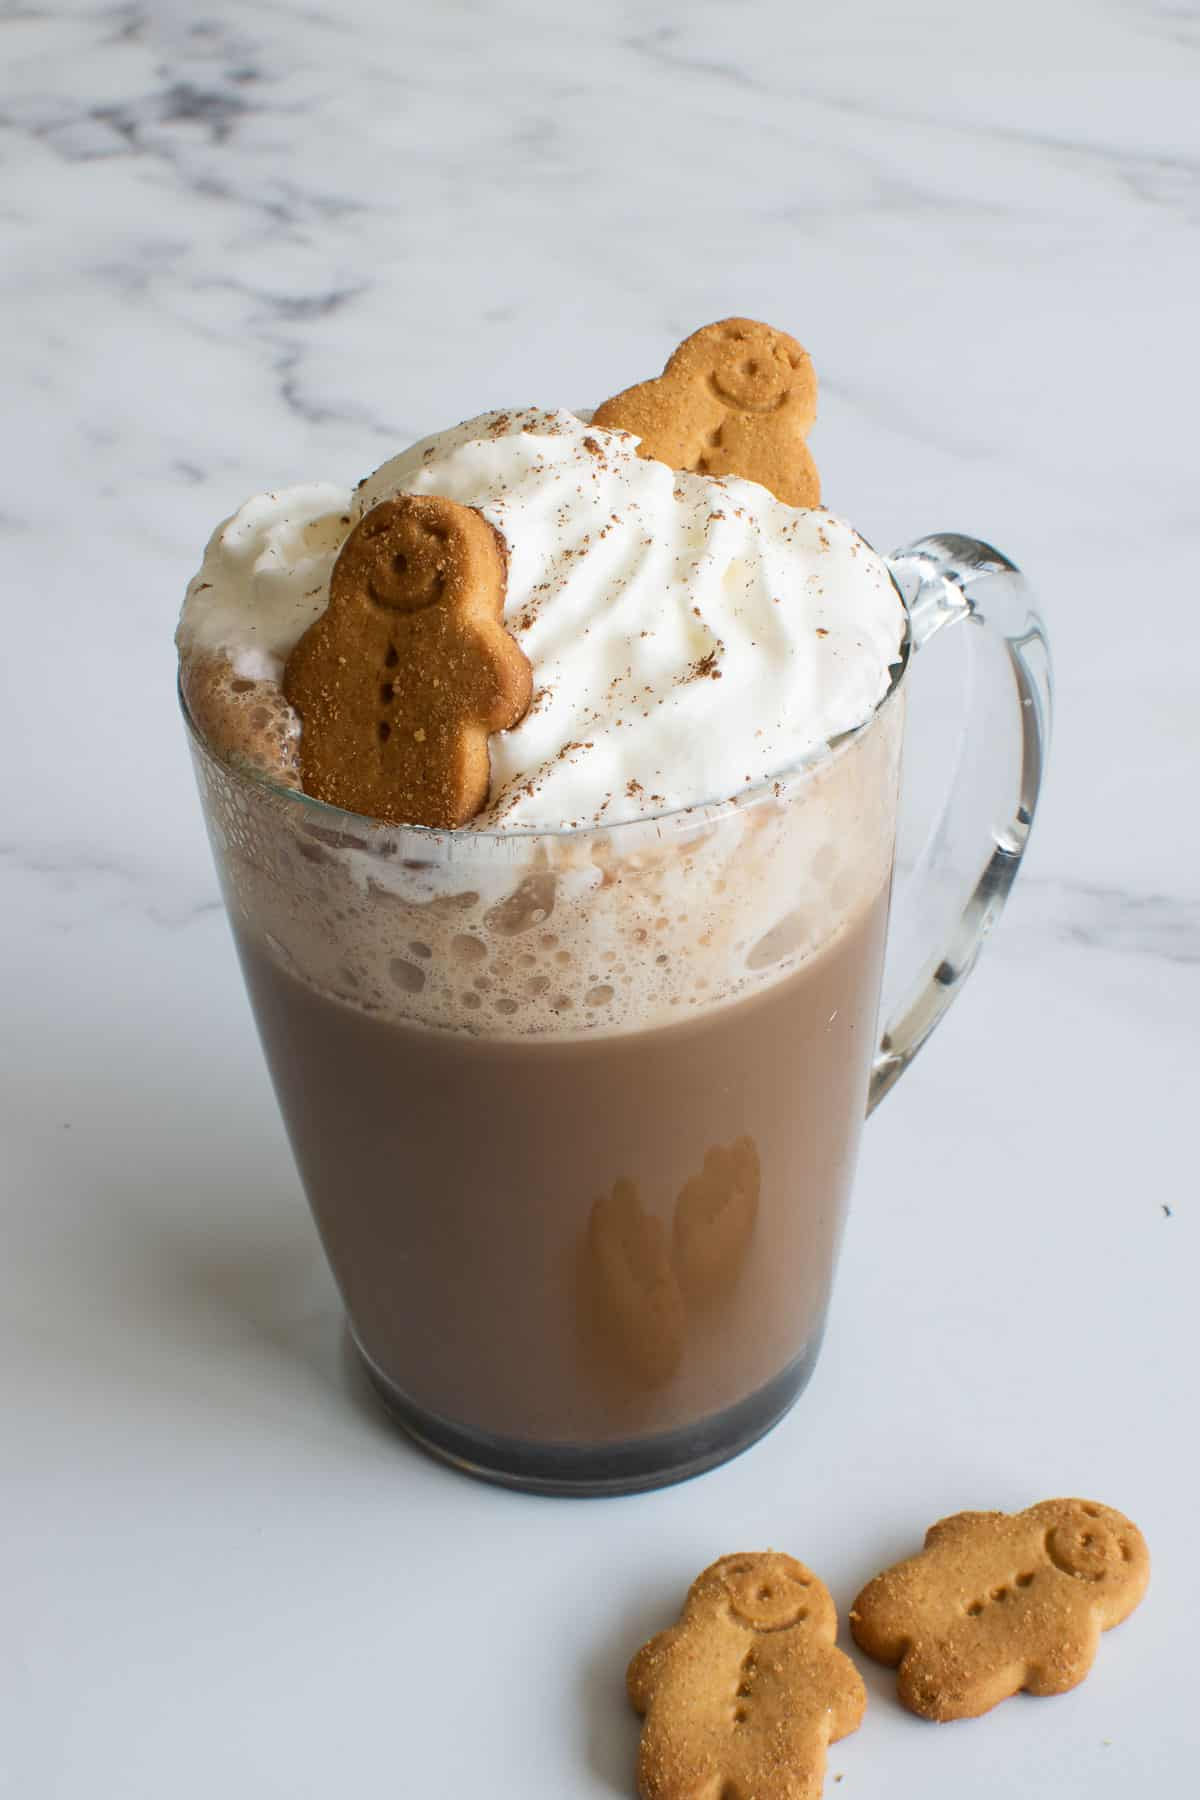 A glass of gingerbread latte with whipped cream and gingerbread men.